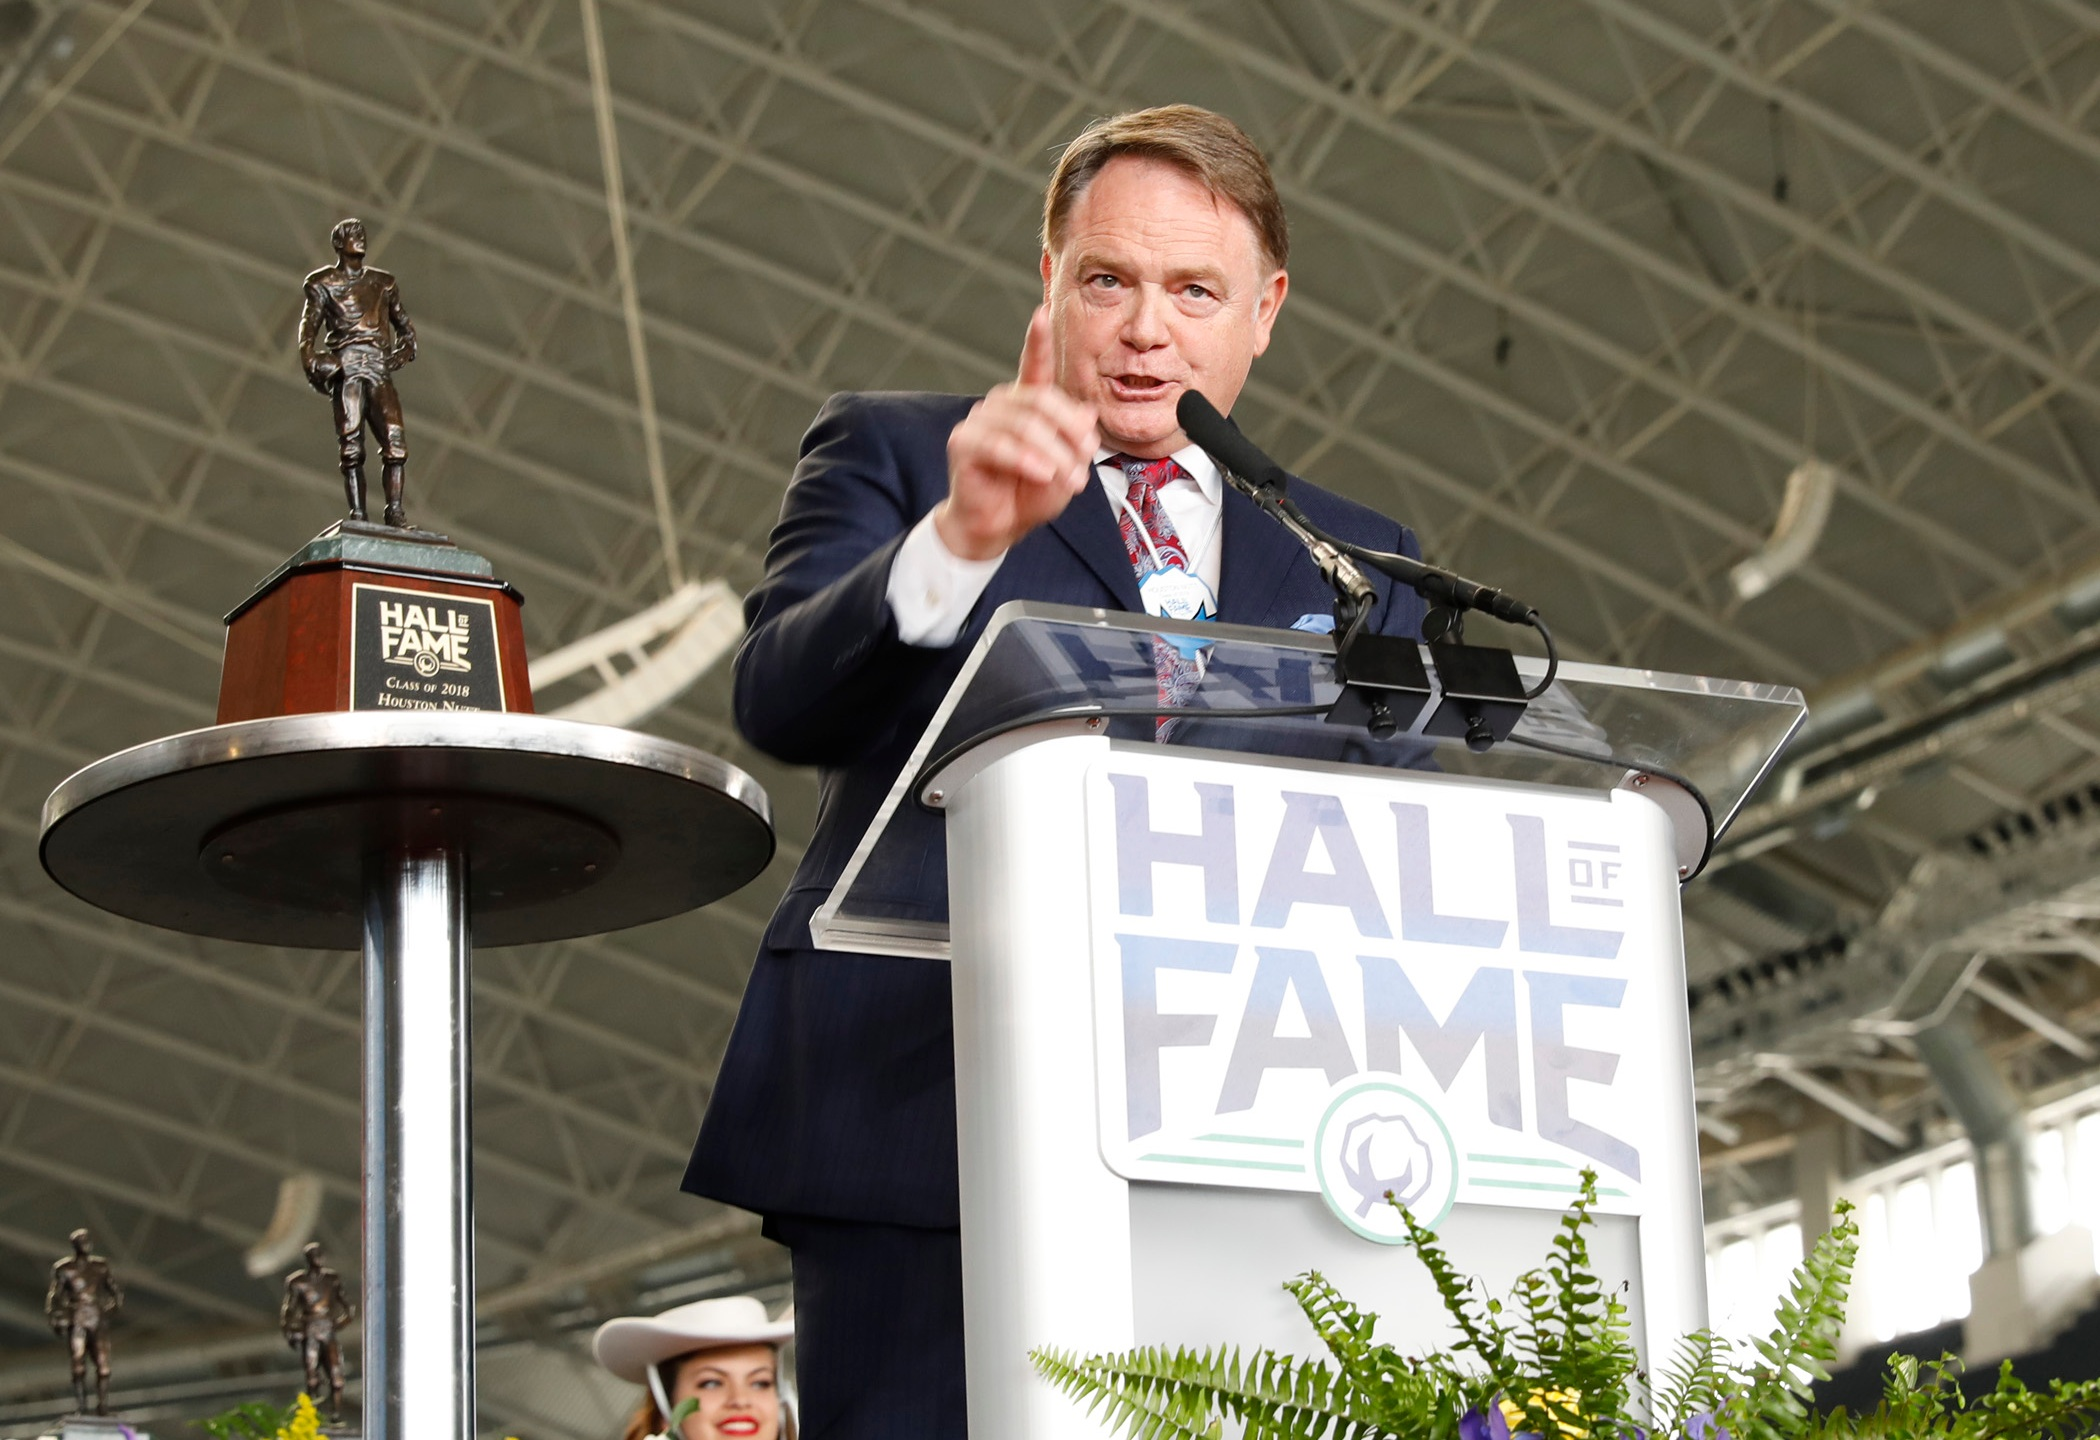 Houston Nutt_Arkansas_Cotton Bowl Hall of Fame_6696c1_CBAA HOF 050818_1525814640692.jpg.jpg